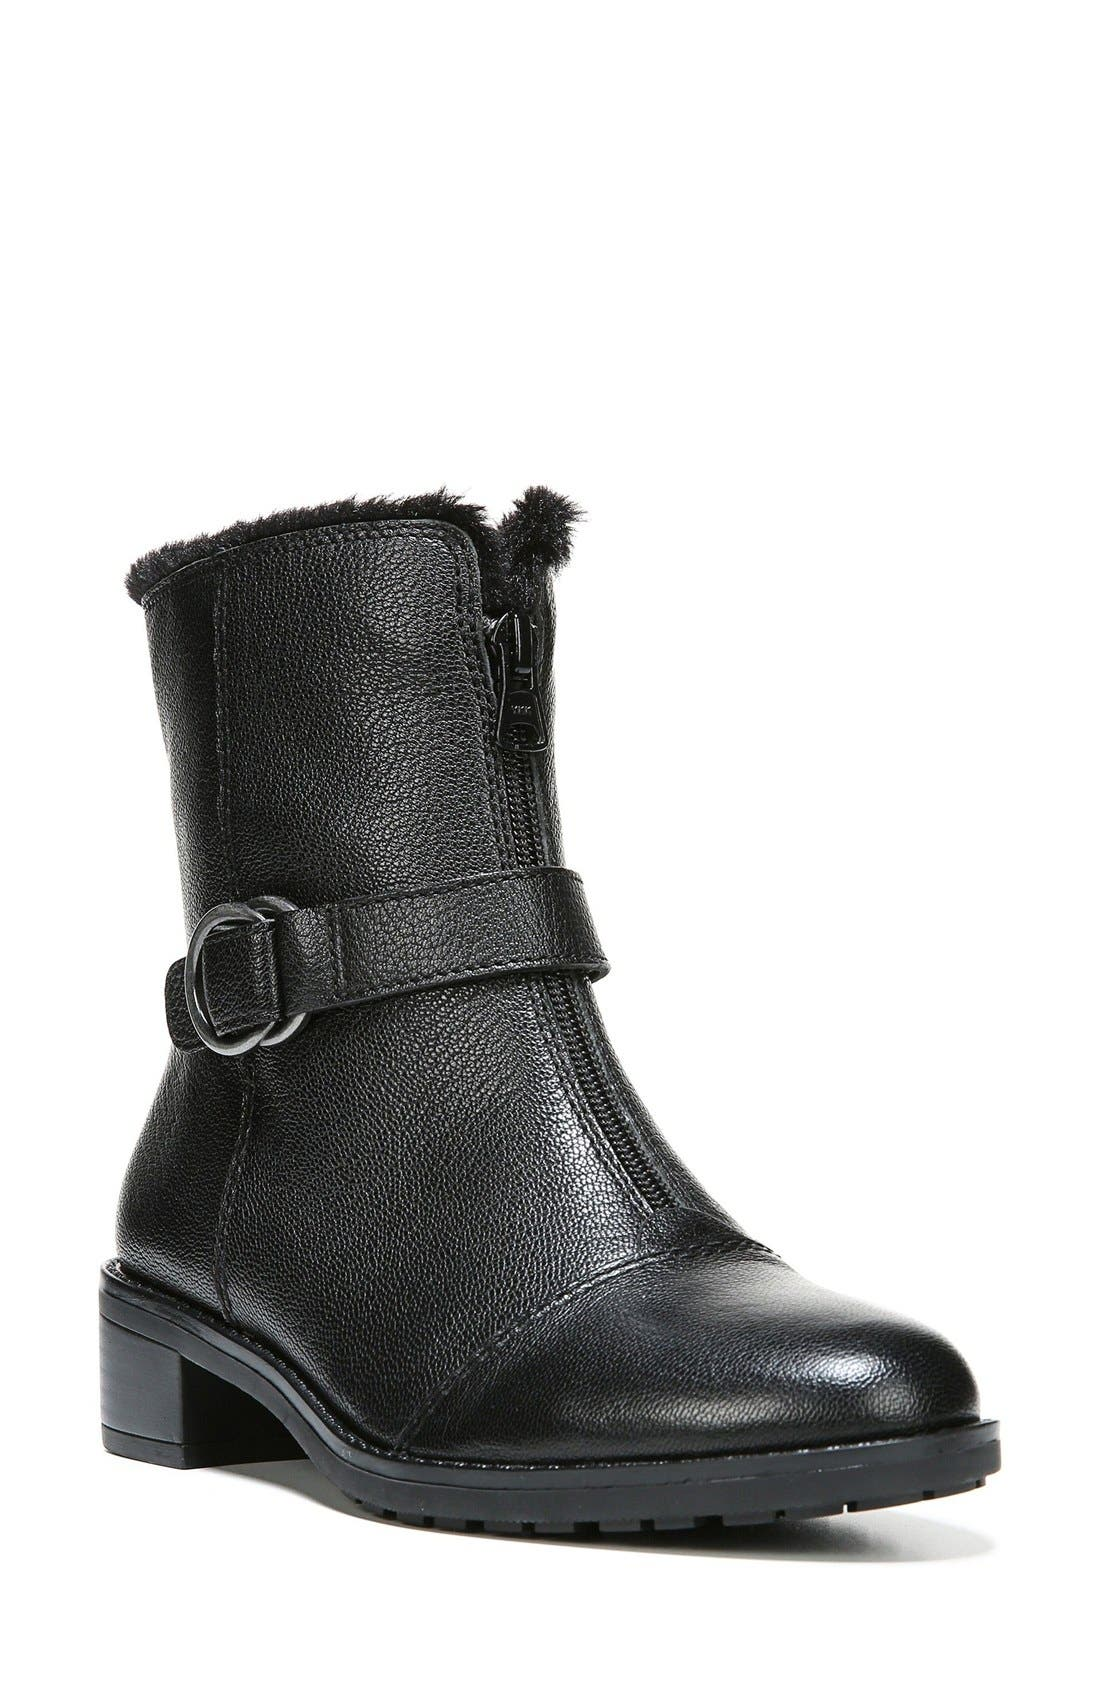 Main Image - Naturalizer 'Madera' Boot (Women)